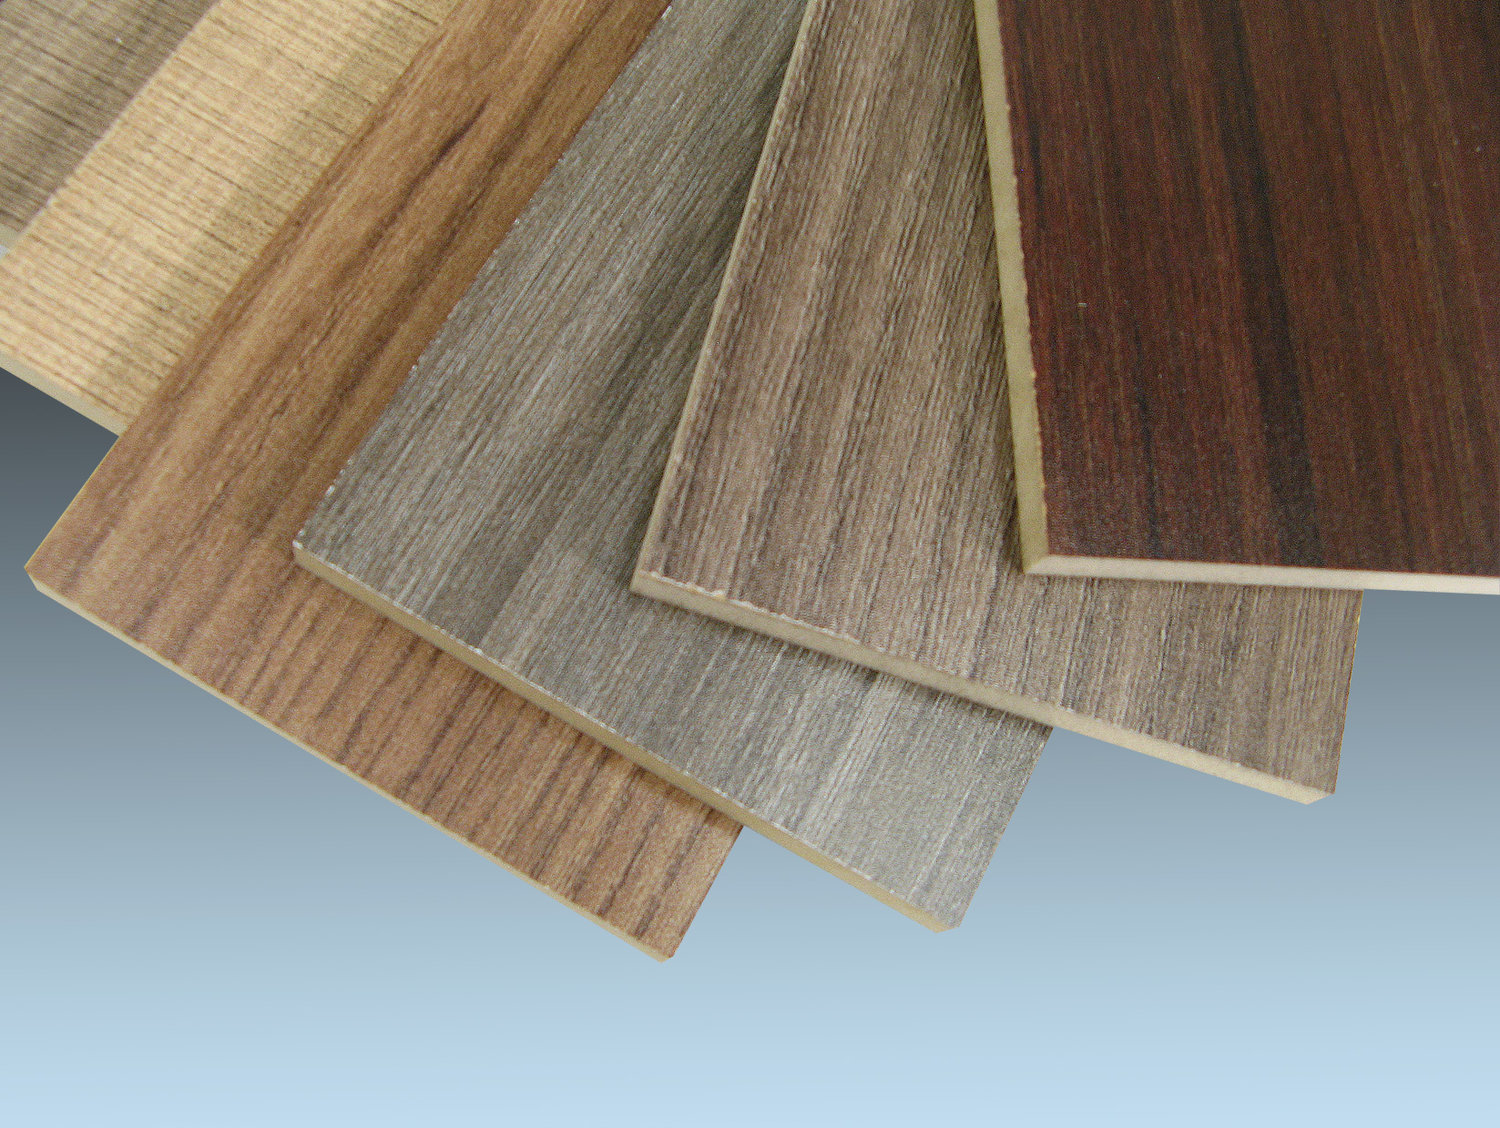 Thermally Fused Laminate — Richwood Industries